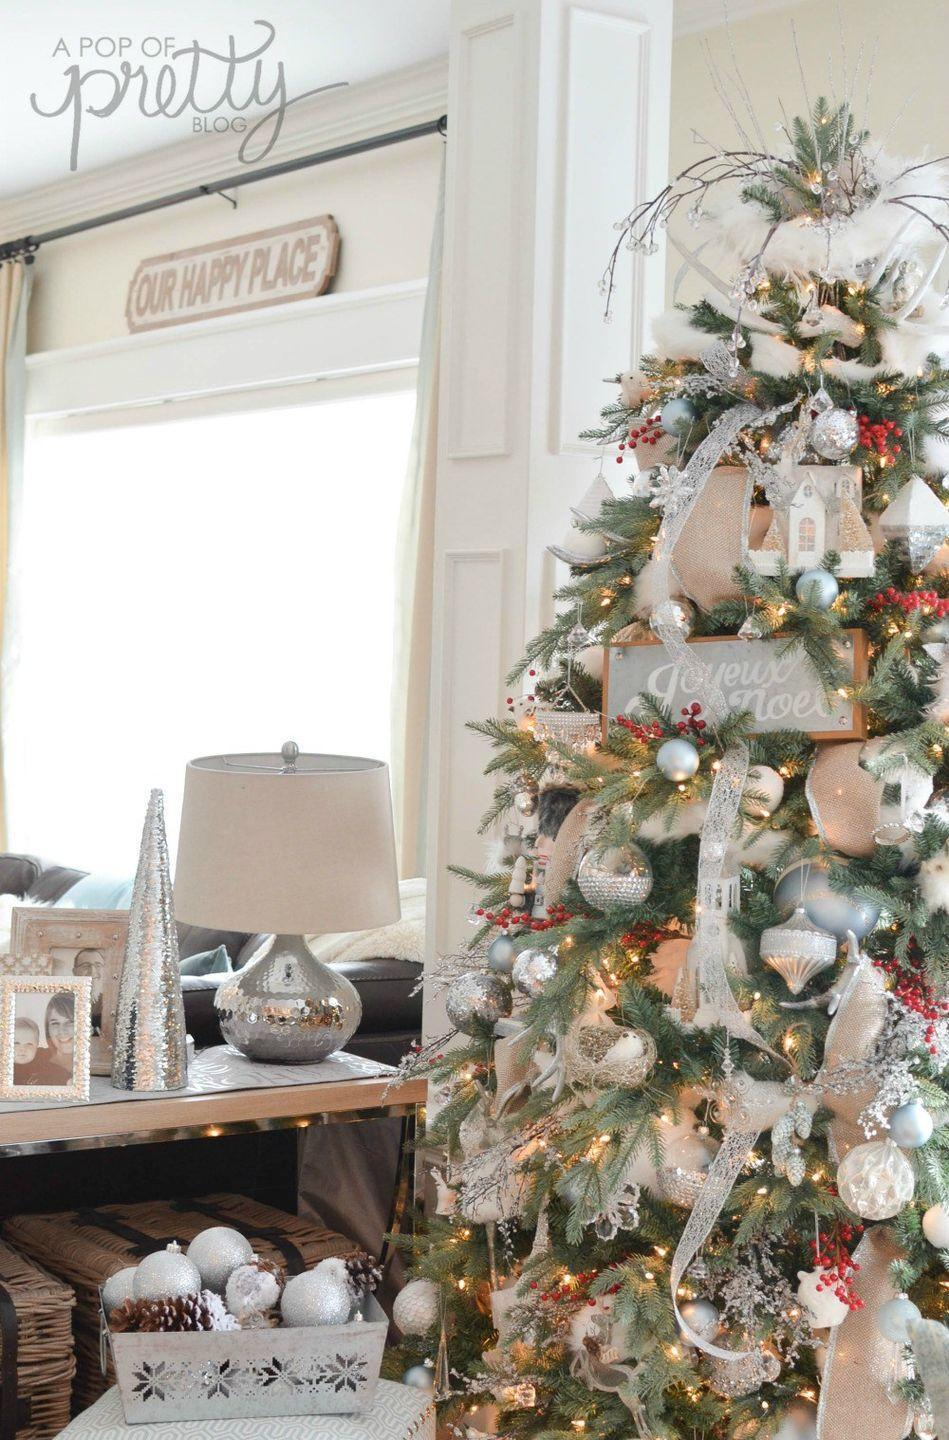 """<p>If you're overwhelmed with red and green but you still want to keep the Christmas spirit, add small bunches of red holly to this elegant tree.</p><p><strong><em>Get the tutorial at <a href=""""https://apopofpretty.com/canadian-bloggers-2016-christmas-tour-winter-wonderland/"""" rel=""""nofollow noopener"""" target=""""_blank"""" data-ylk=""""slk:A Pop of Pretty"""" class=""""link rapid-noclick-resp"""">A Pop of Pretty</a>.</em></strong></p><p><a class=""""link rapid-noclick-resp"""" href=""""https://www.amazon.com/Lvydec-Pack-Artificial-Berry-Stems/dp/B07YFKTLBG?tag=syn-yahoo-20&ascsubtag=%5Bartid%7C10070.g.2025%5Bsrc%7Cyahoo-us"""" rel=""""nofollow noopener"""" target=""""_blank"""" data-ylk=""""slk:BUY HOLLY BERRIES"""">BUY HOLLY BERRIES</a> </p>"""